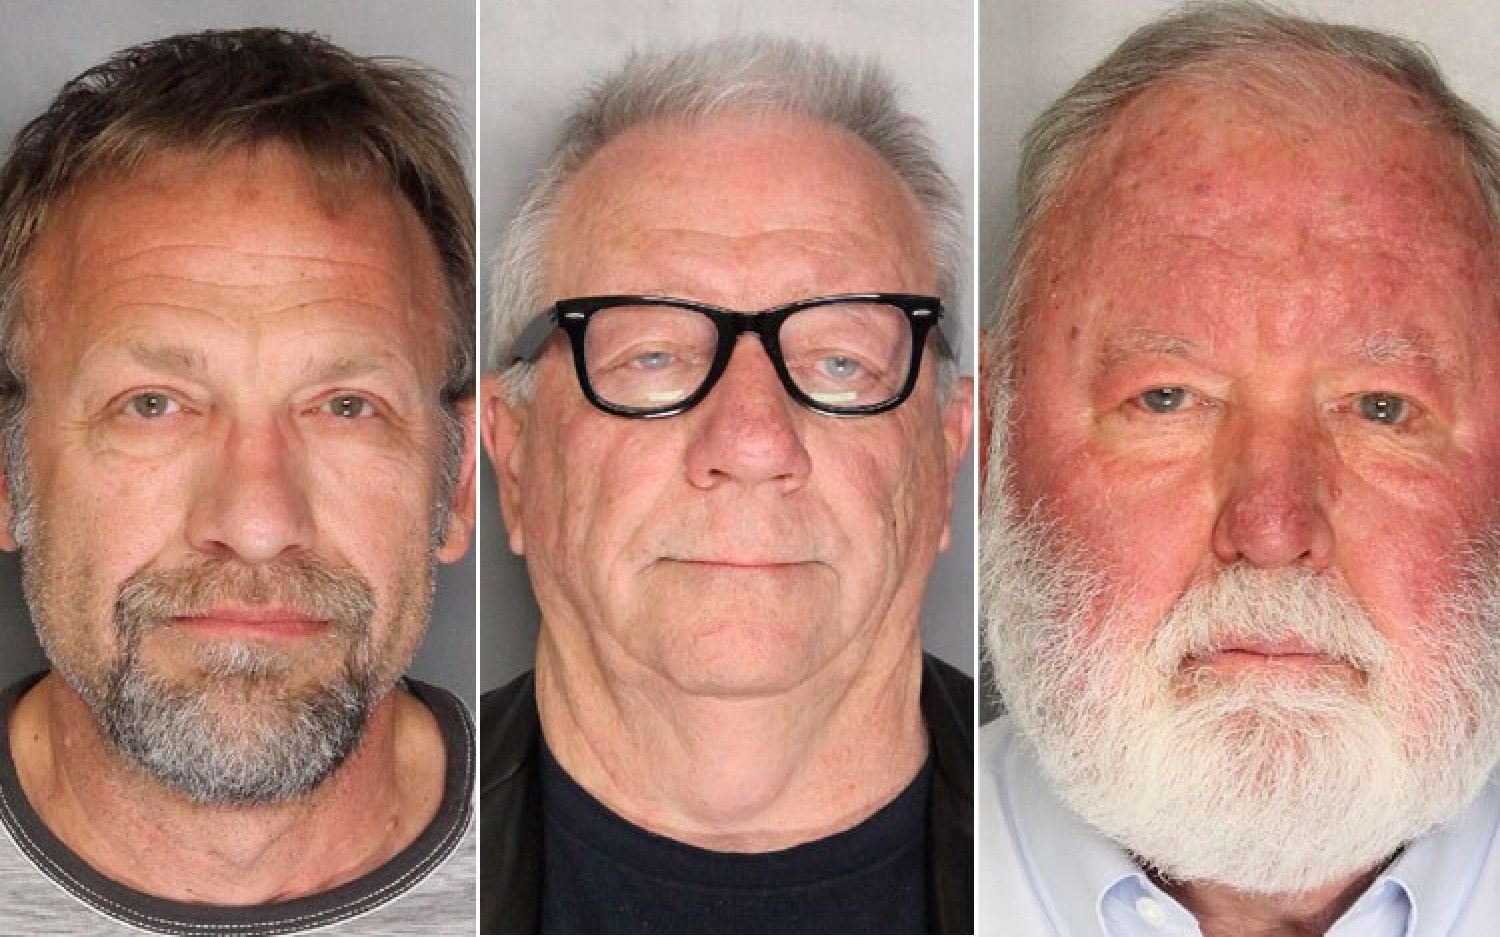 Judge drops pimping charges against Backpage executives